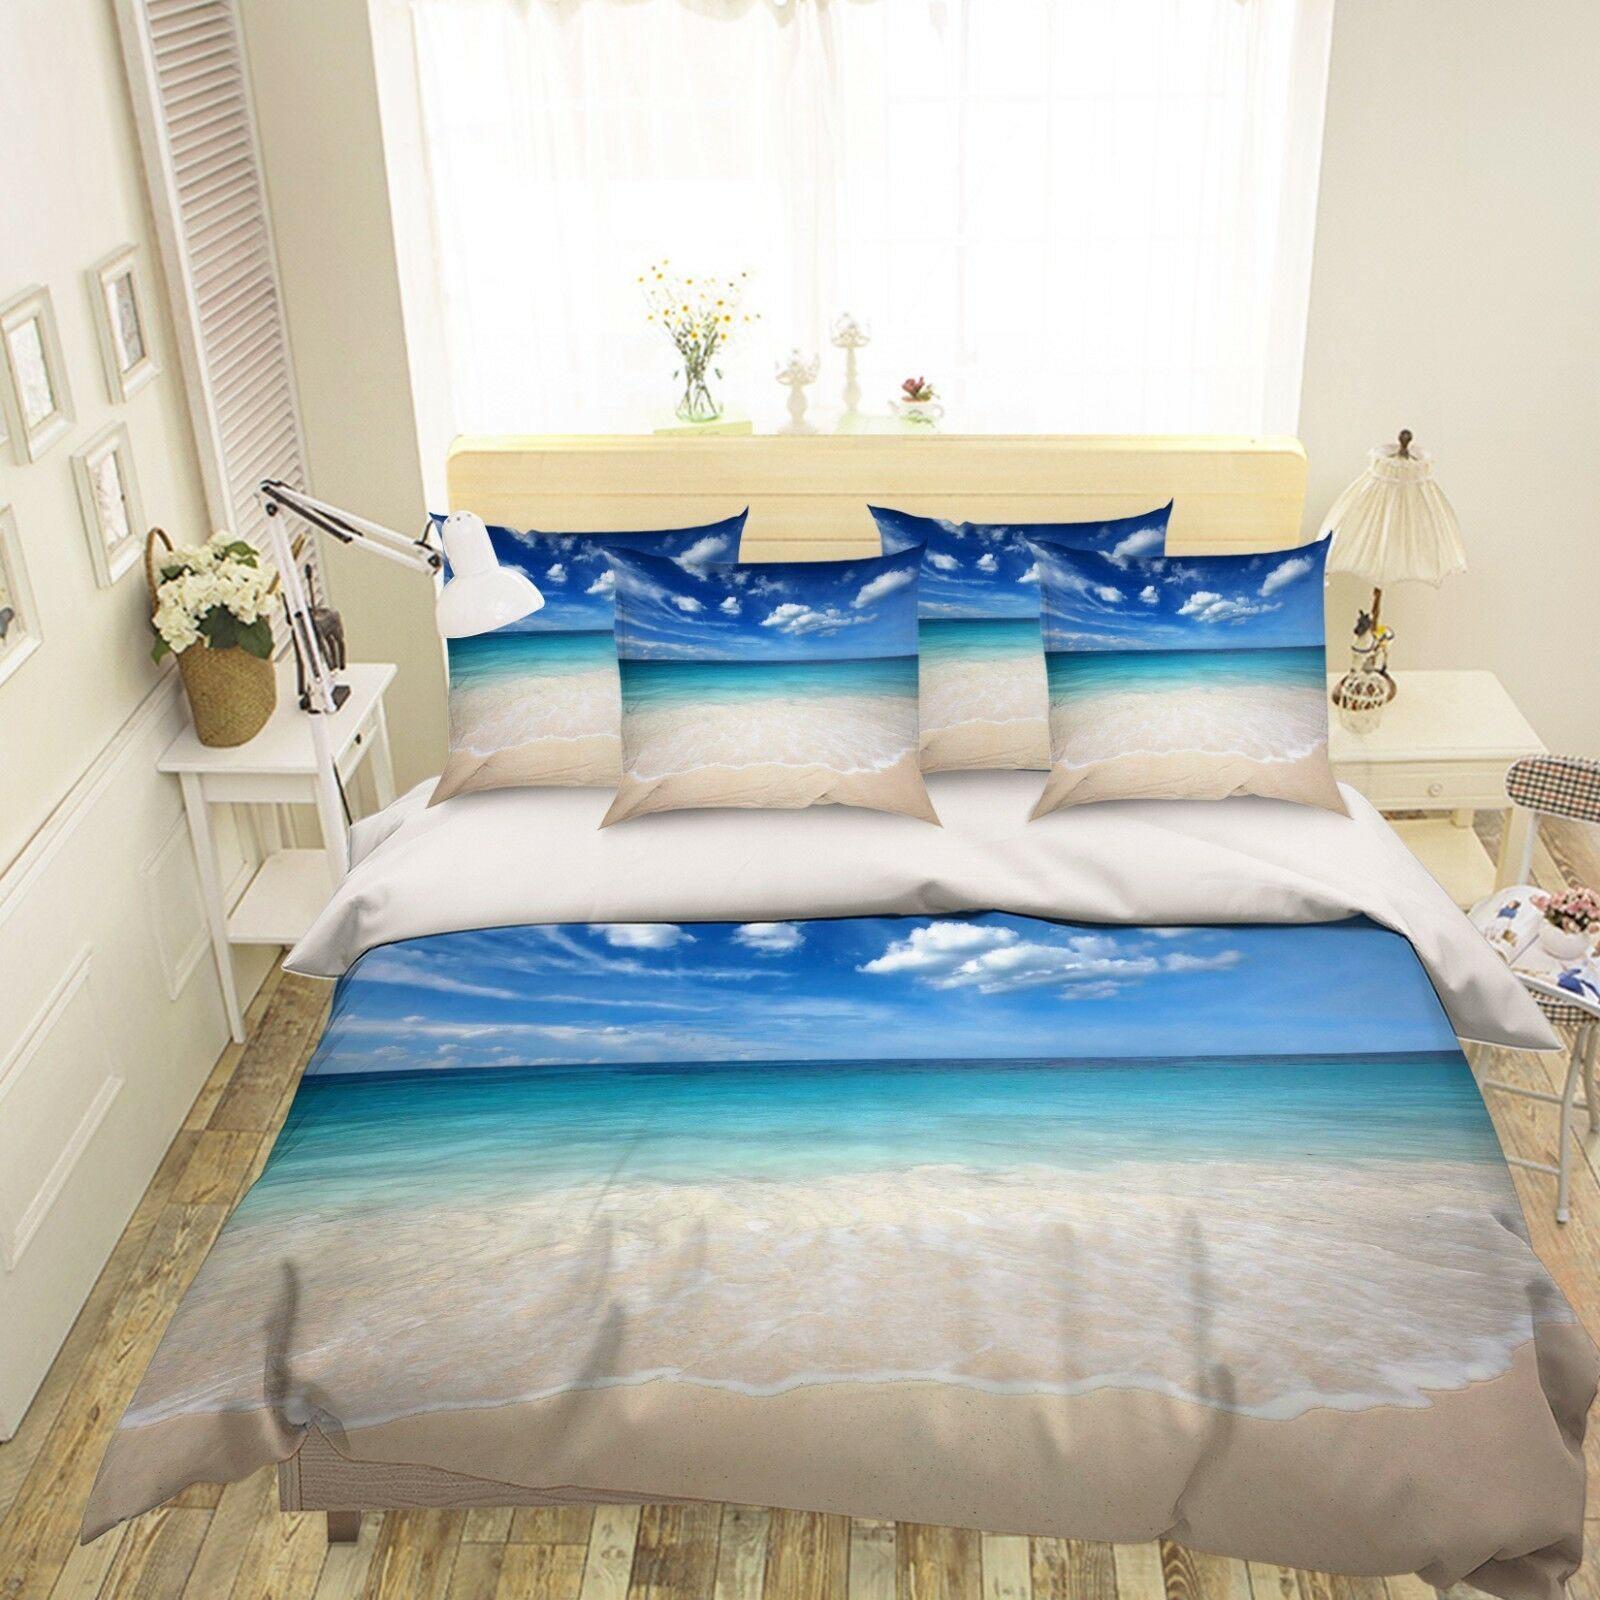 3D Blau Beach 68 Bed Pillowcases Quilt Duvet Cover Set Single Queen King AU Cobb